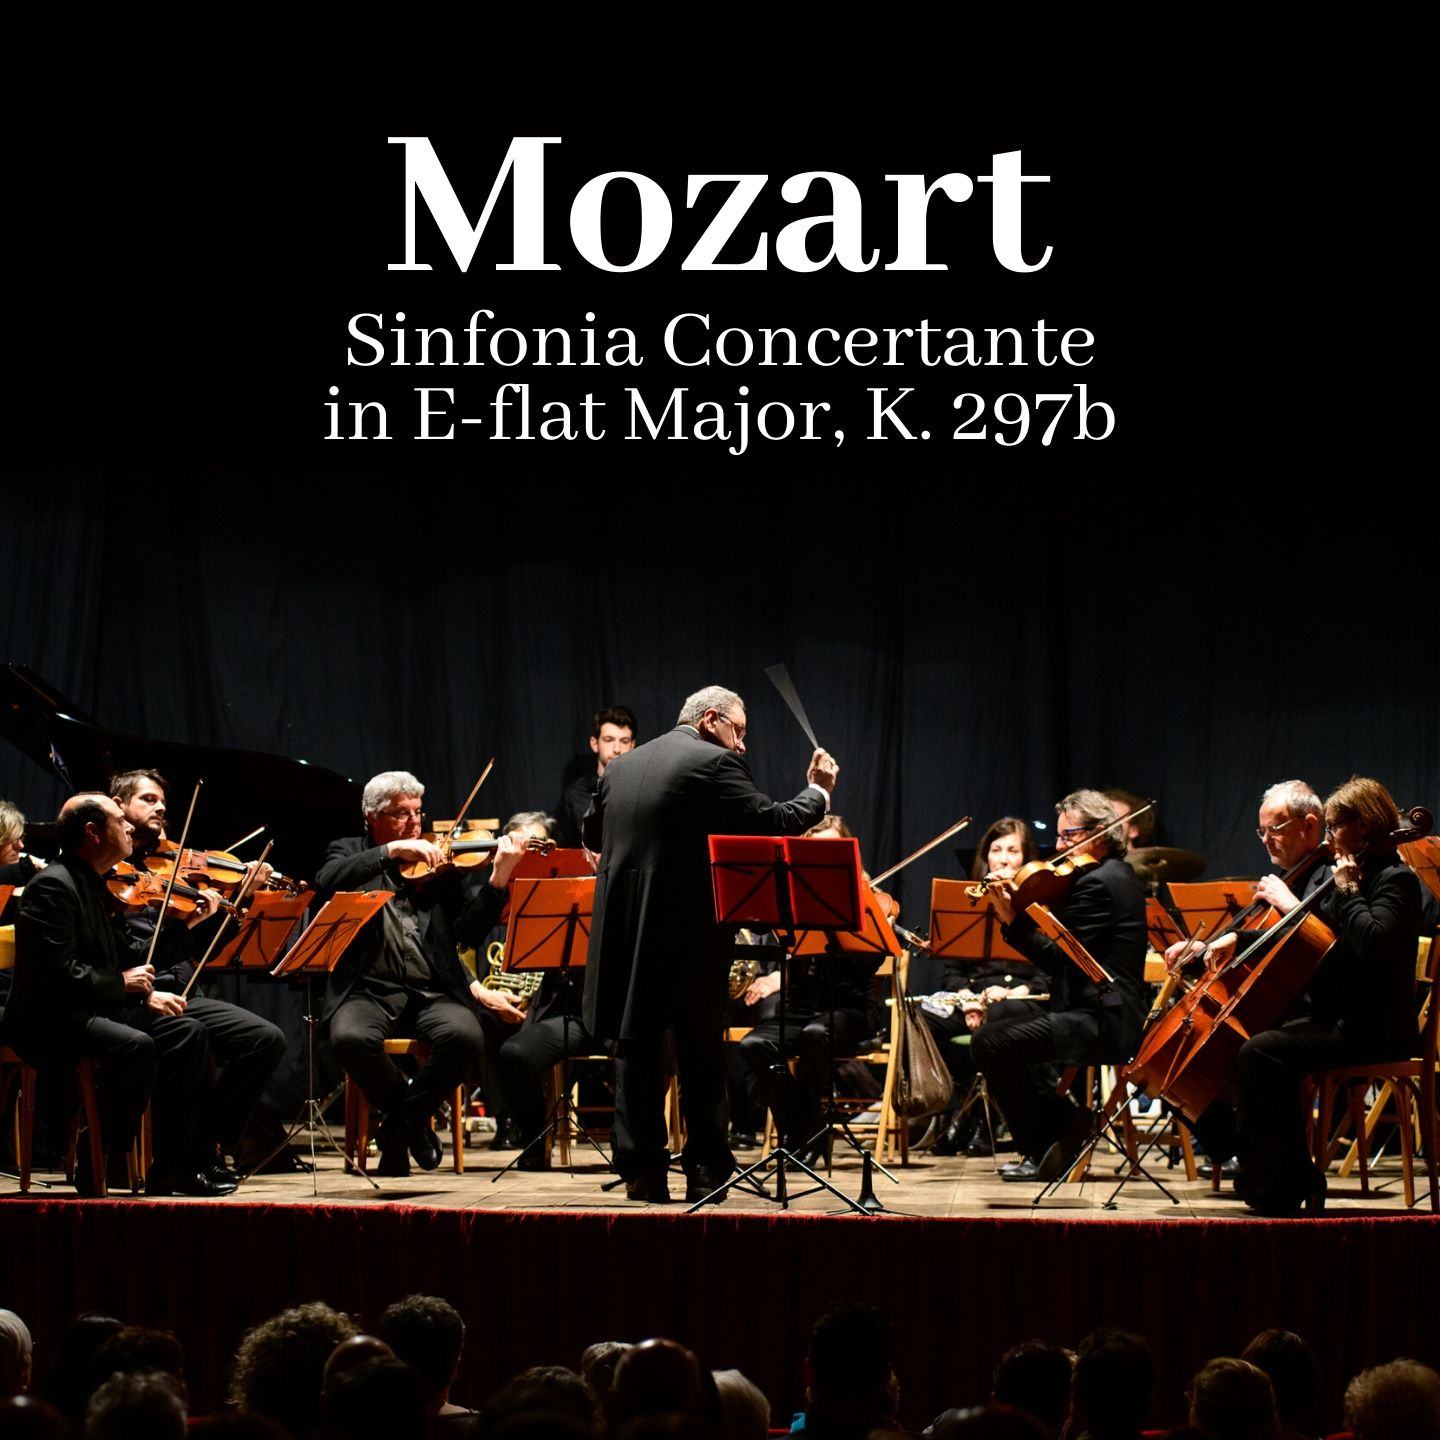 Mozart: Sinfonia Concertante in E-flat major, K. 297b